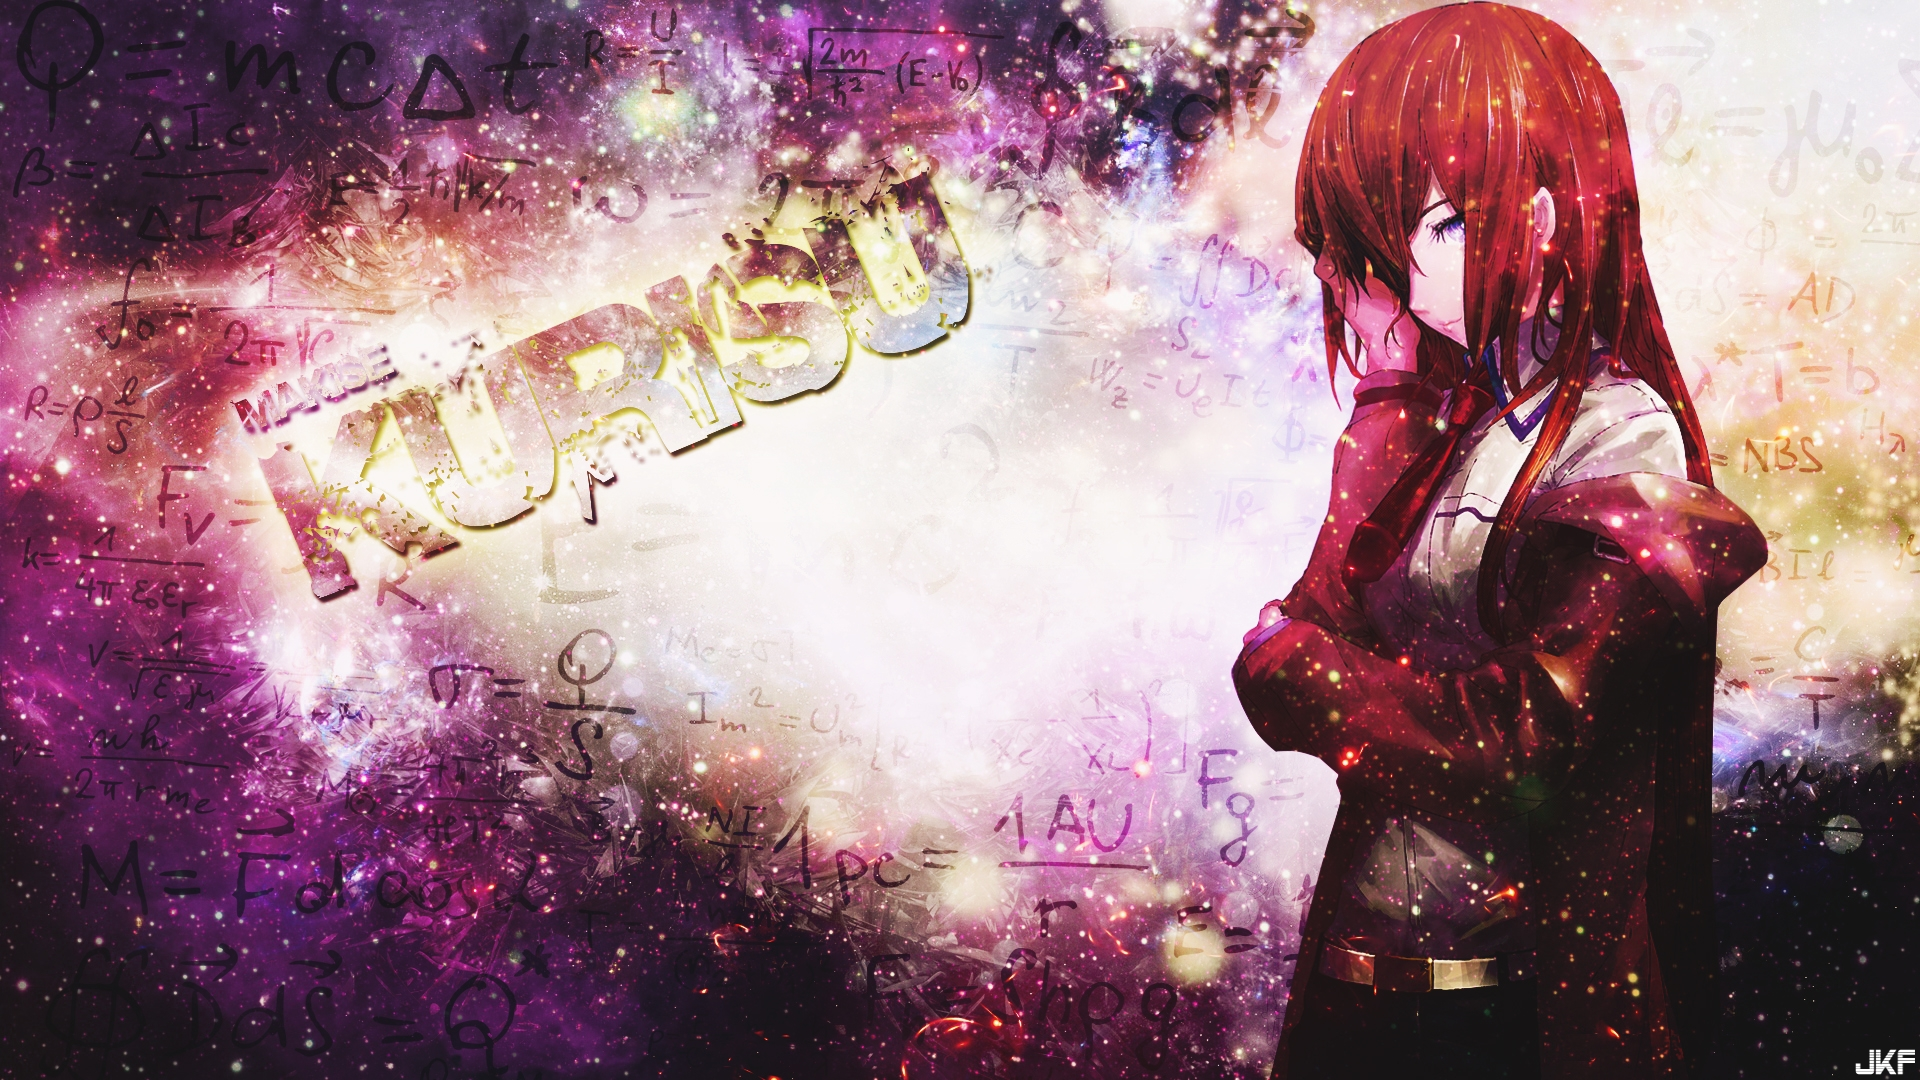 kurisu_wallpaper_by_dinocojv-d900fph.jpg